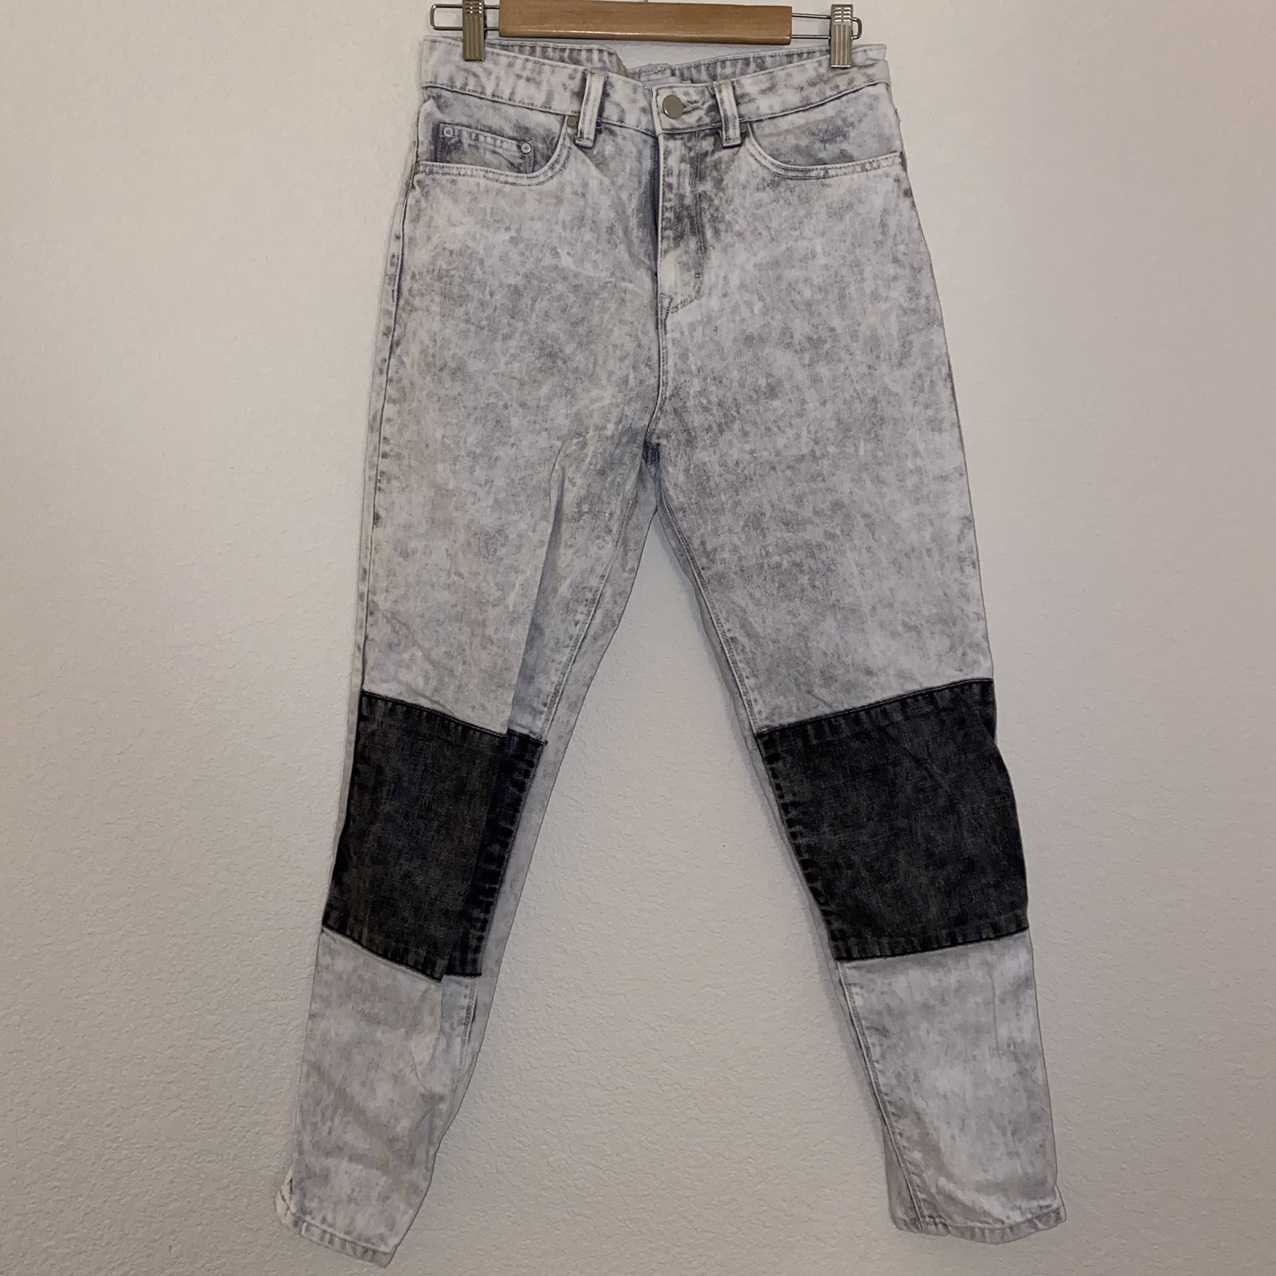 Product Image 1 - Contrast Jeans high waisted